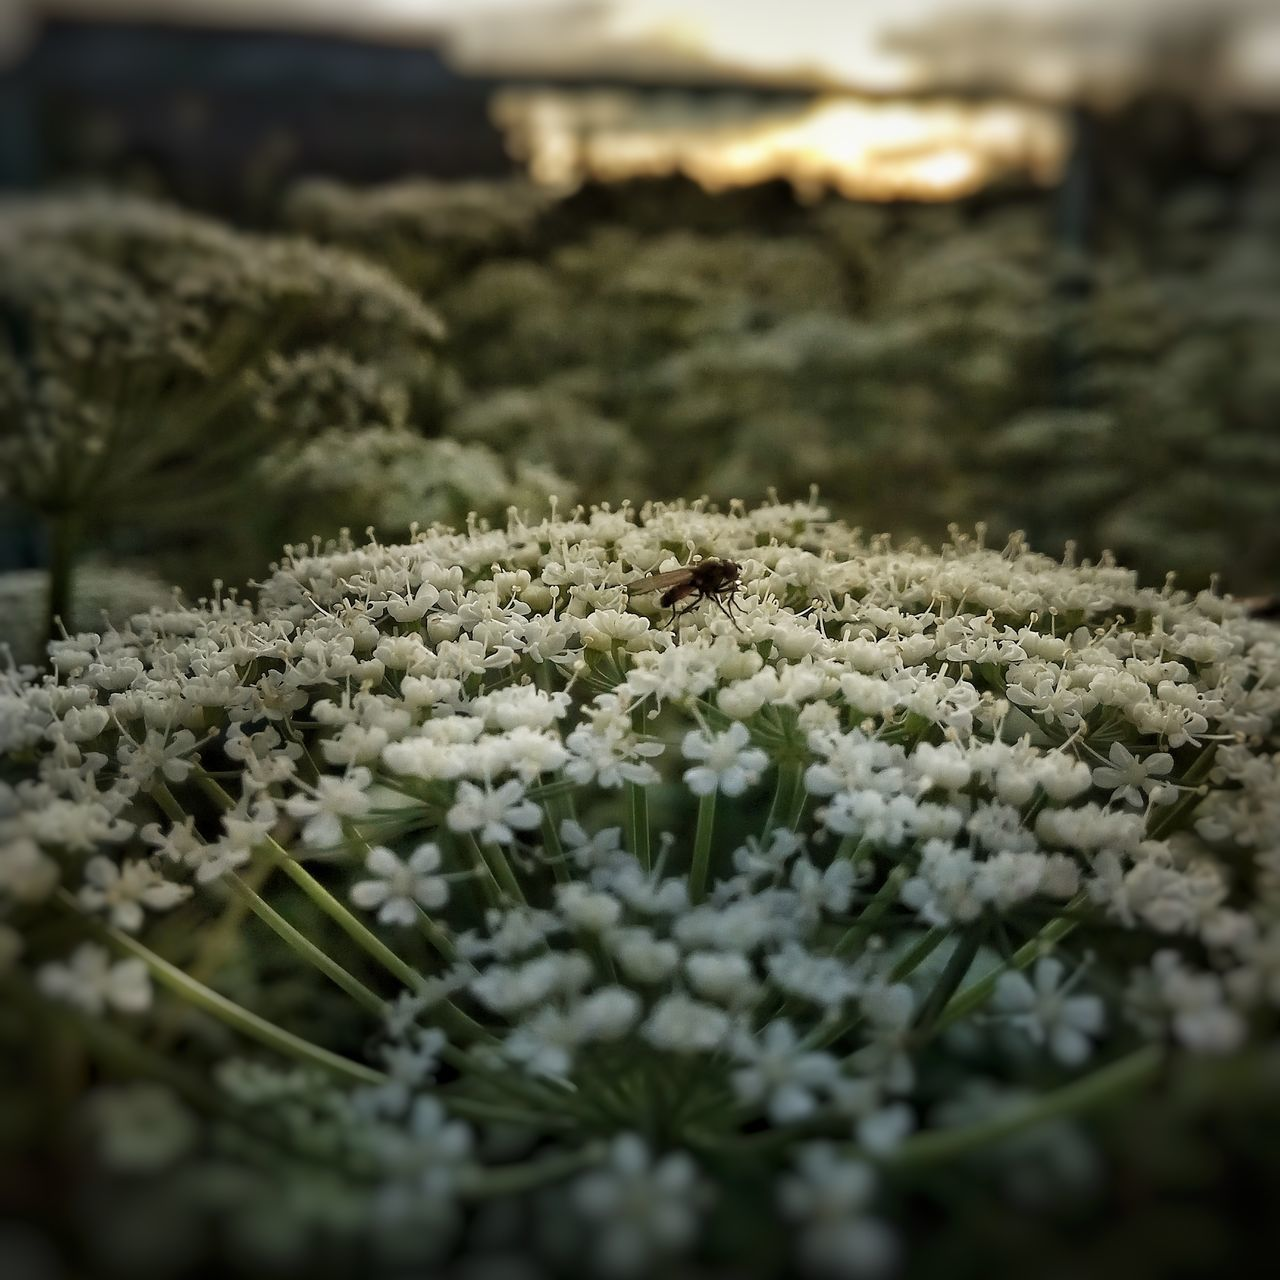 Пятая гора Nature Close-up No People Outdoors Selective Focus Beauty In Nature Day Plant Tranquility Cold Temperature Snow Grass Fragility Freshness